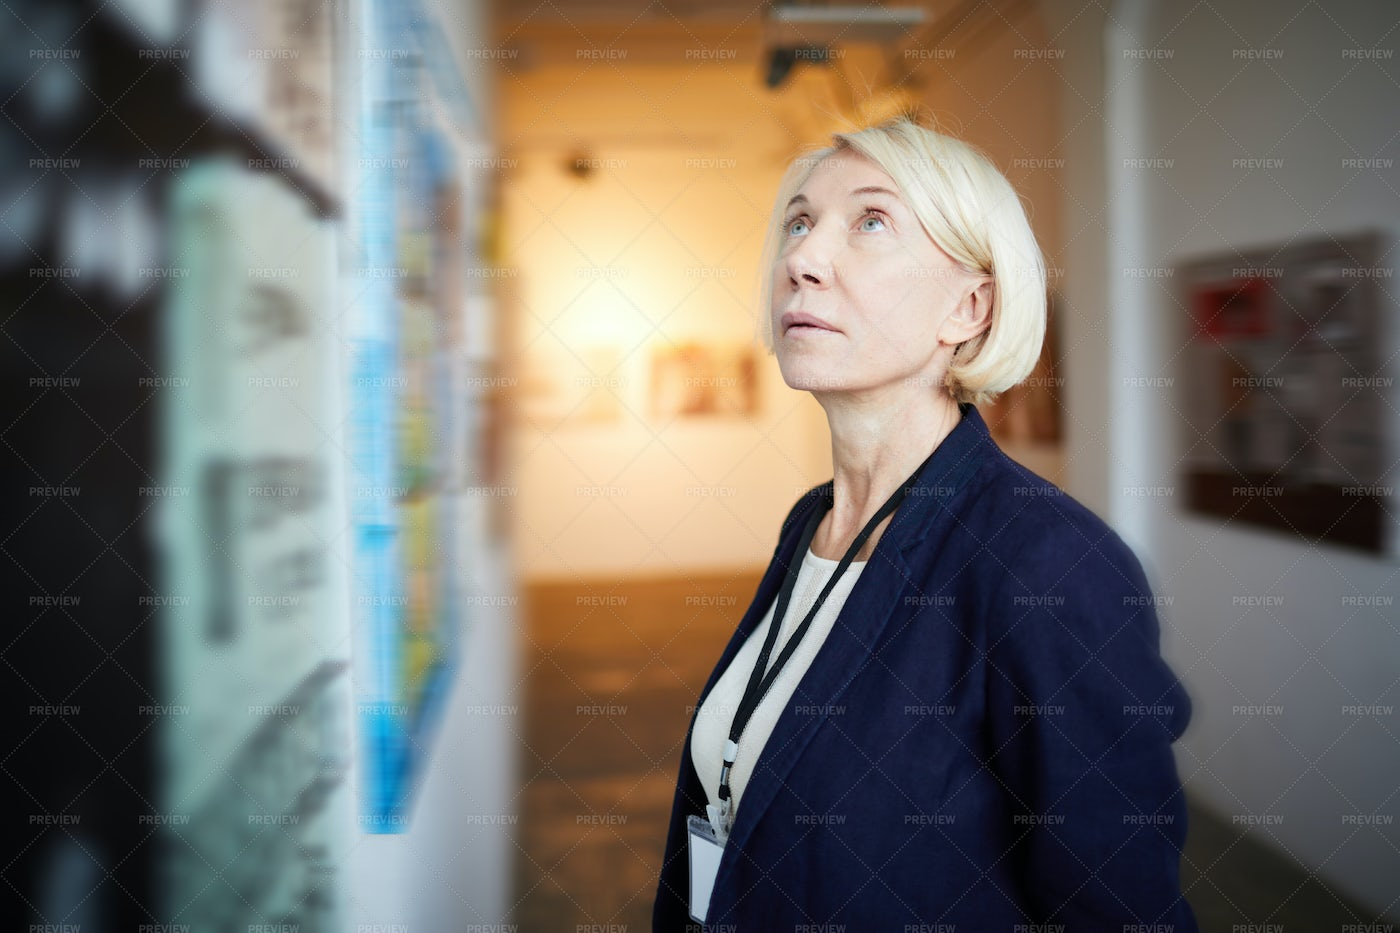 Mature Woman In Art Gallery: Stock Photos